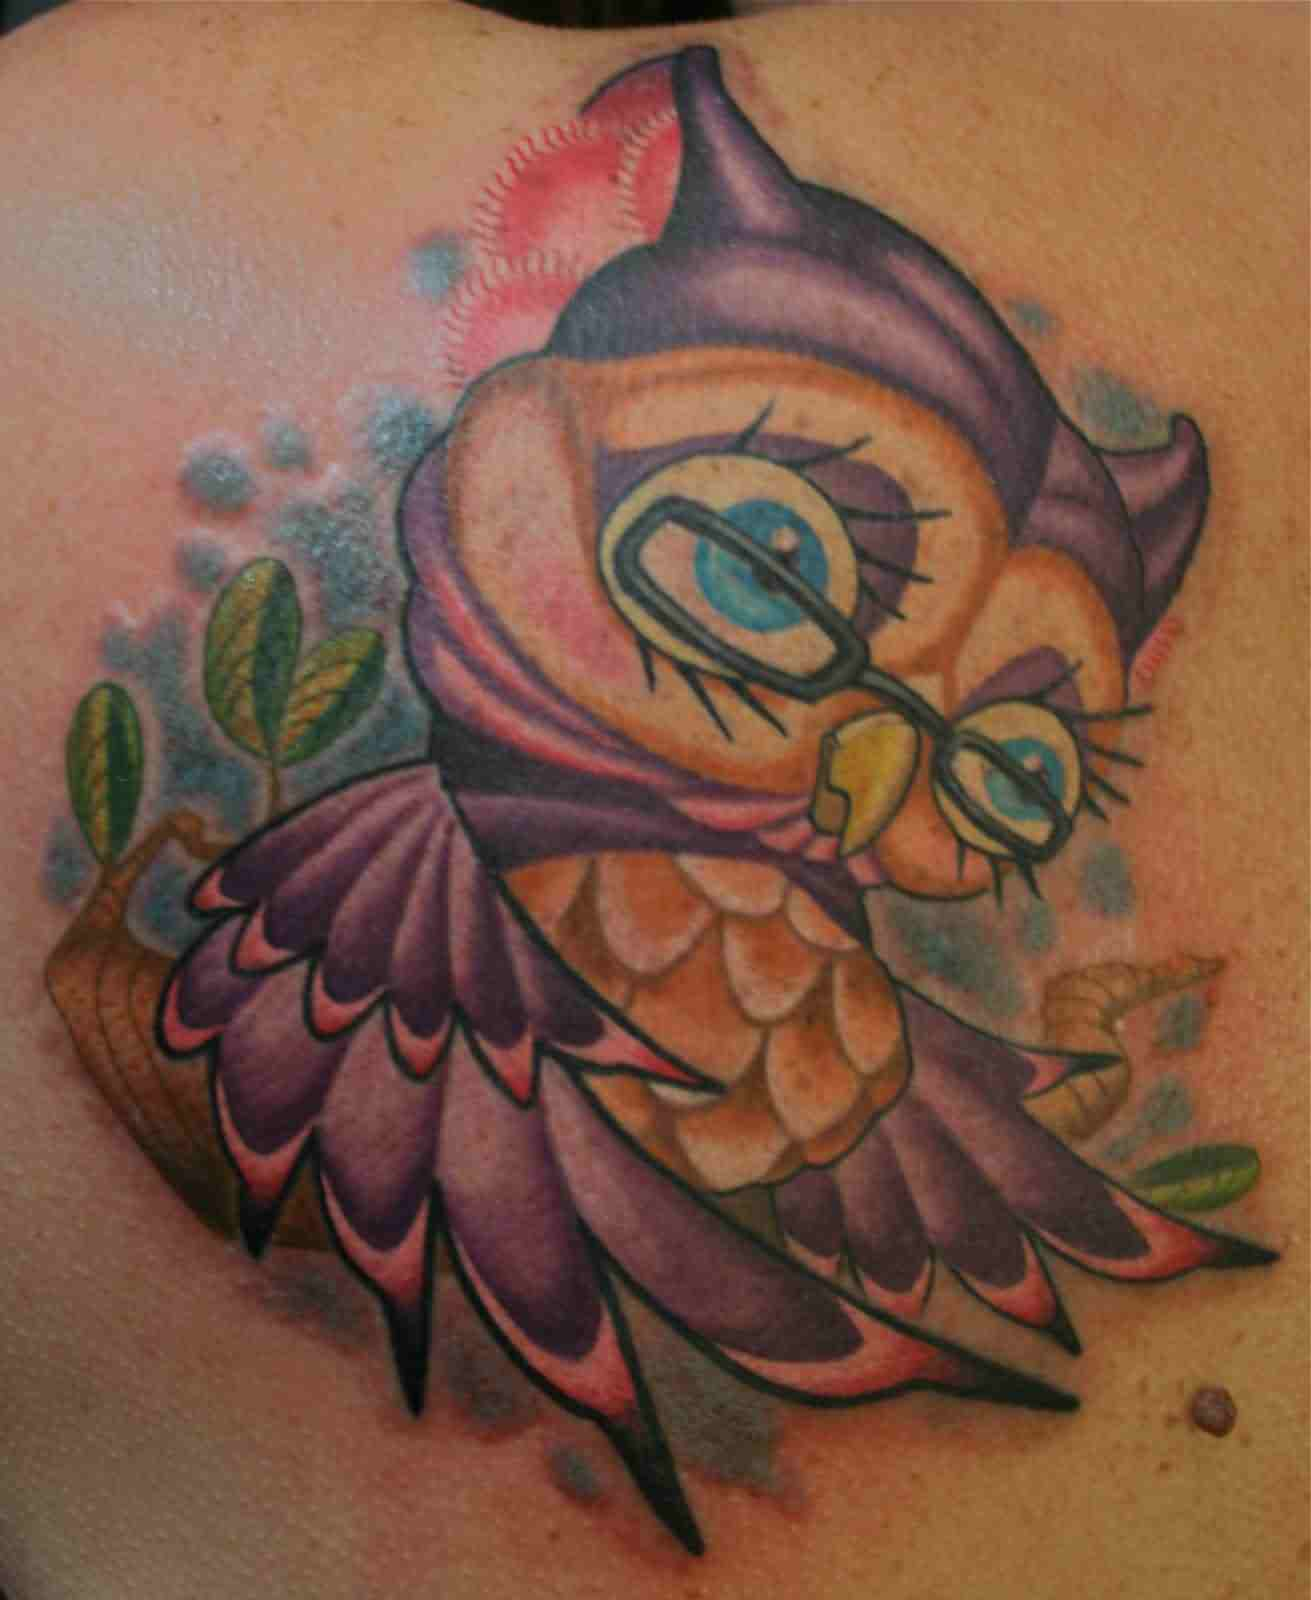 Cute Owl Wearing Glasses Tattoo